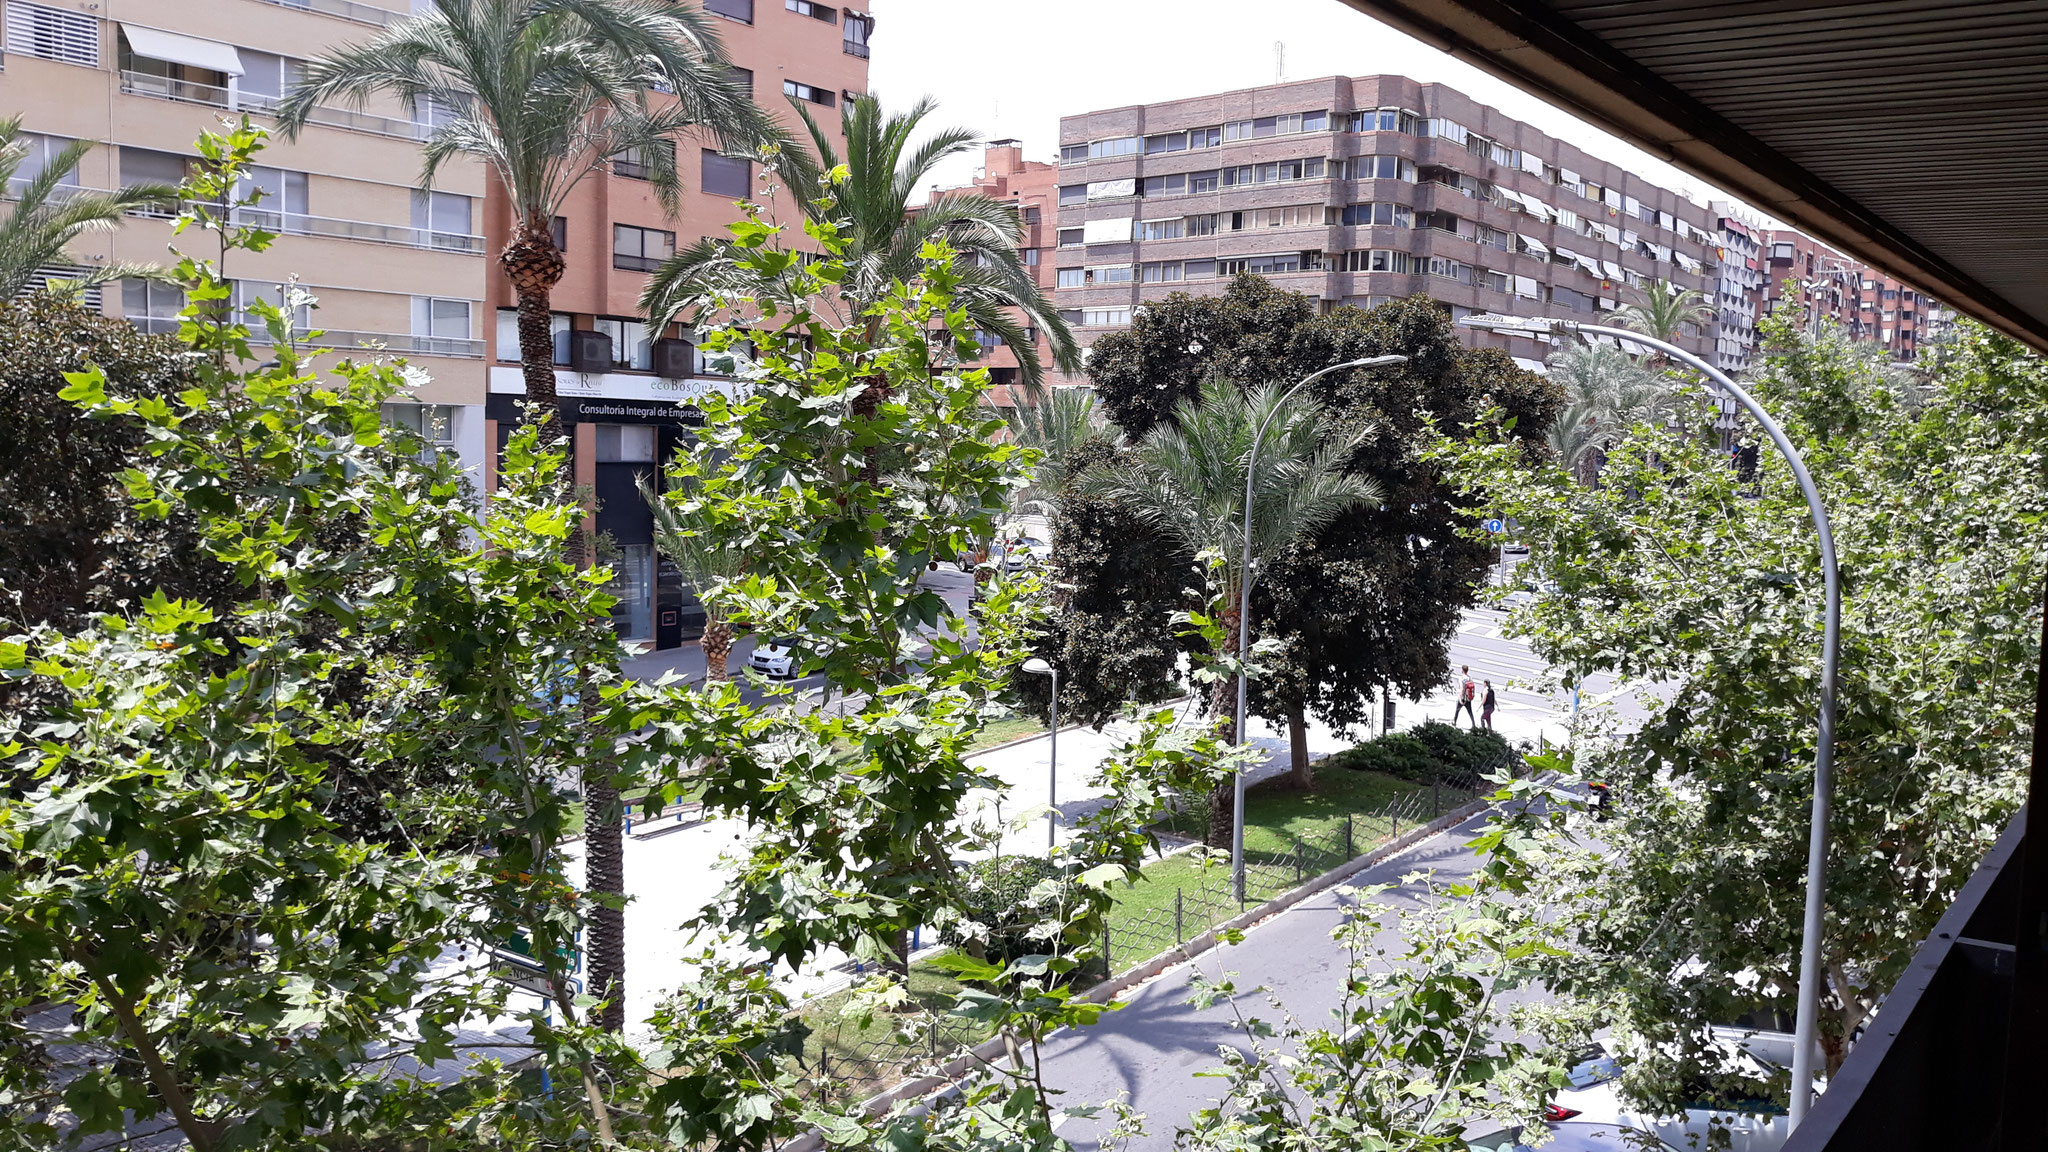 Get your workplace ready in a bright and spacious office in prime business location next to Alicante Port, Alicante Digital District, EUIPO and Hotels in the city centre